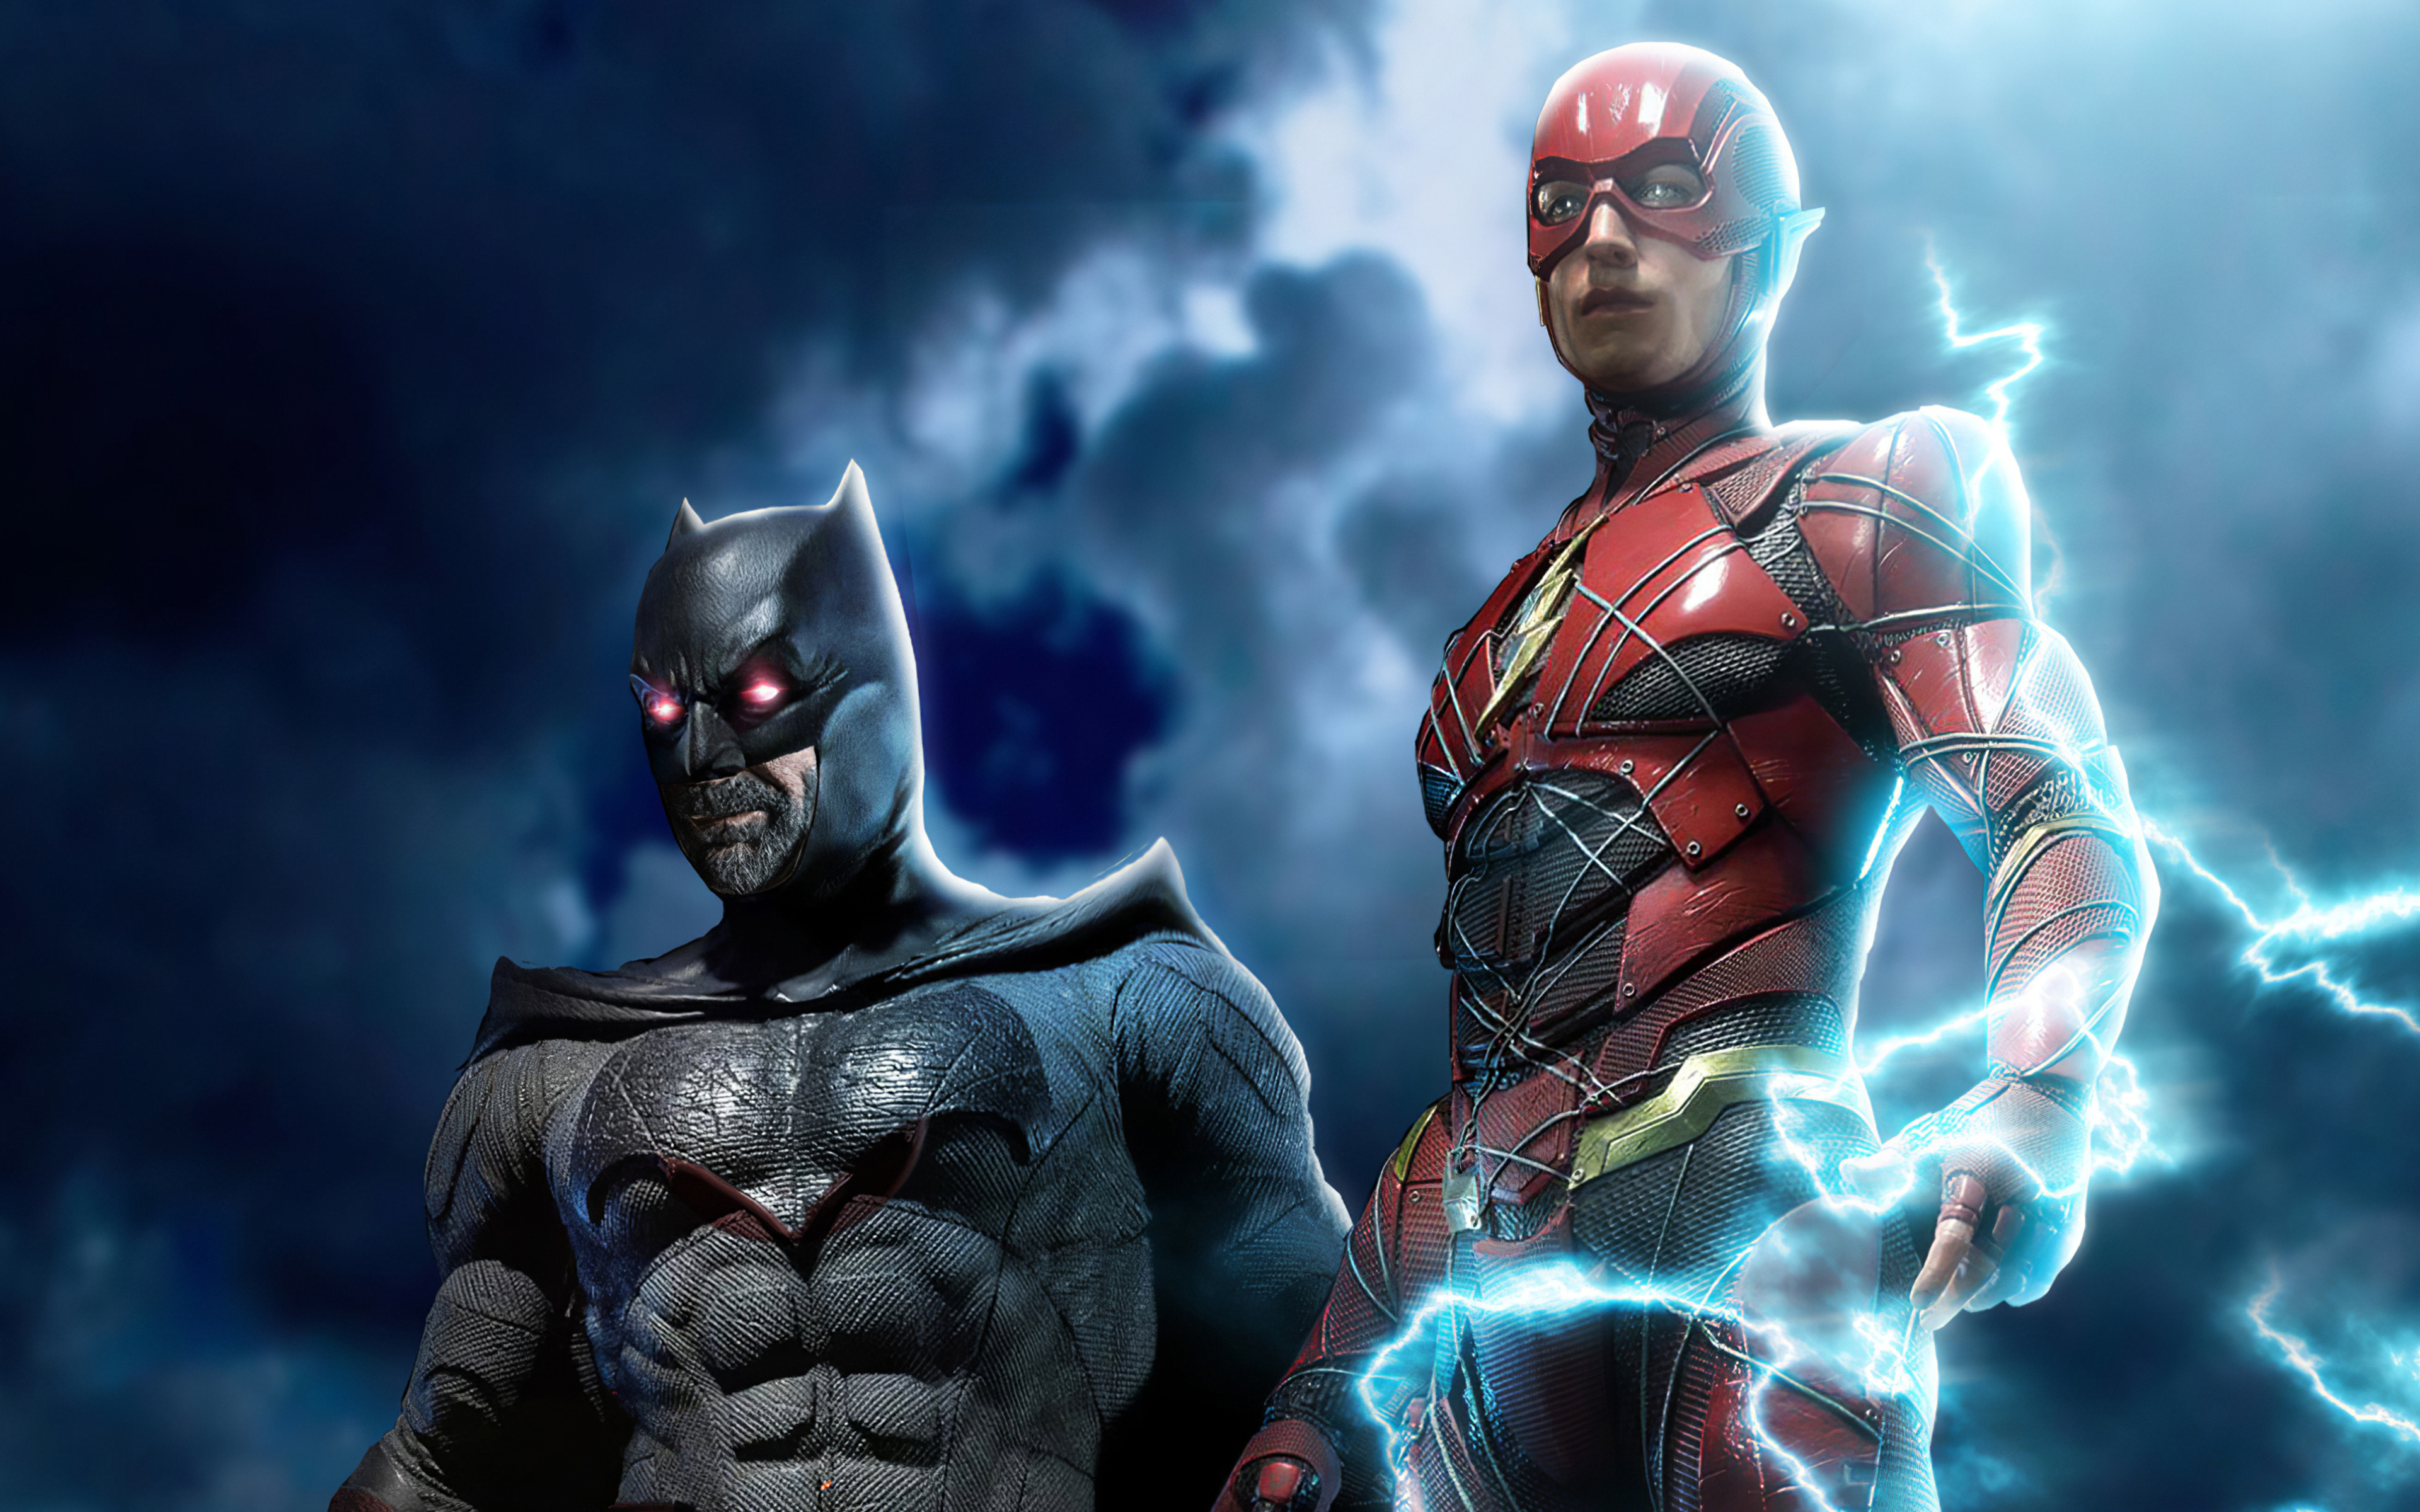 batman-and-flash-2020-a5.jpg